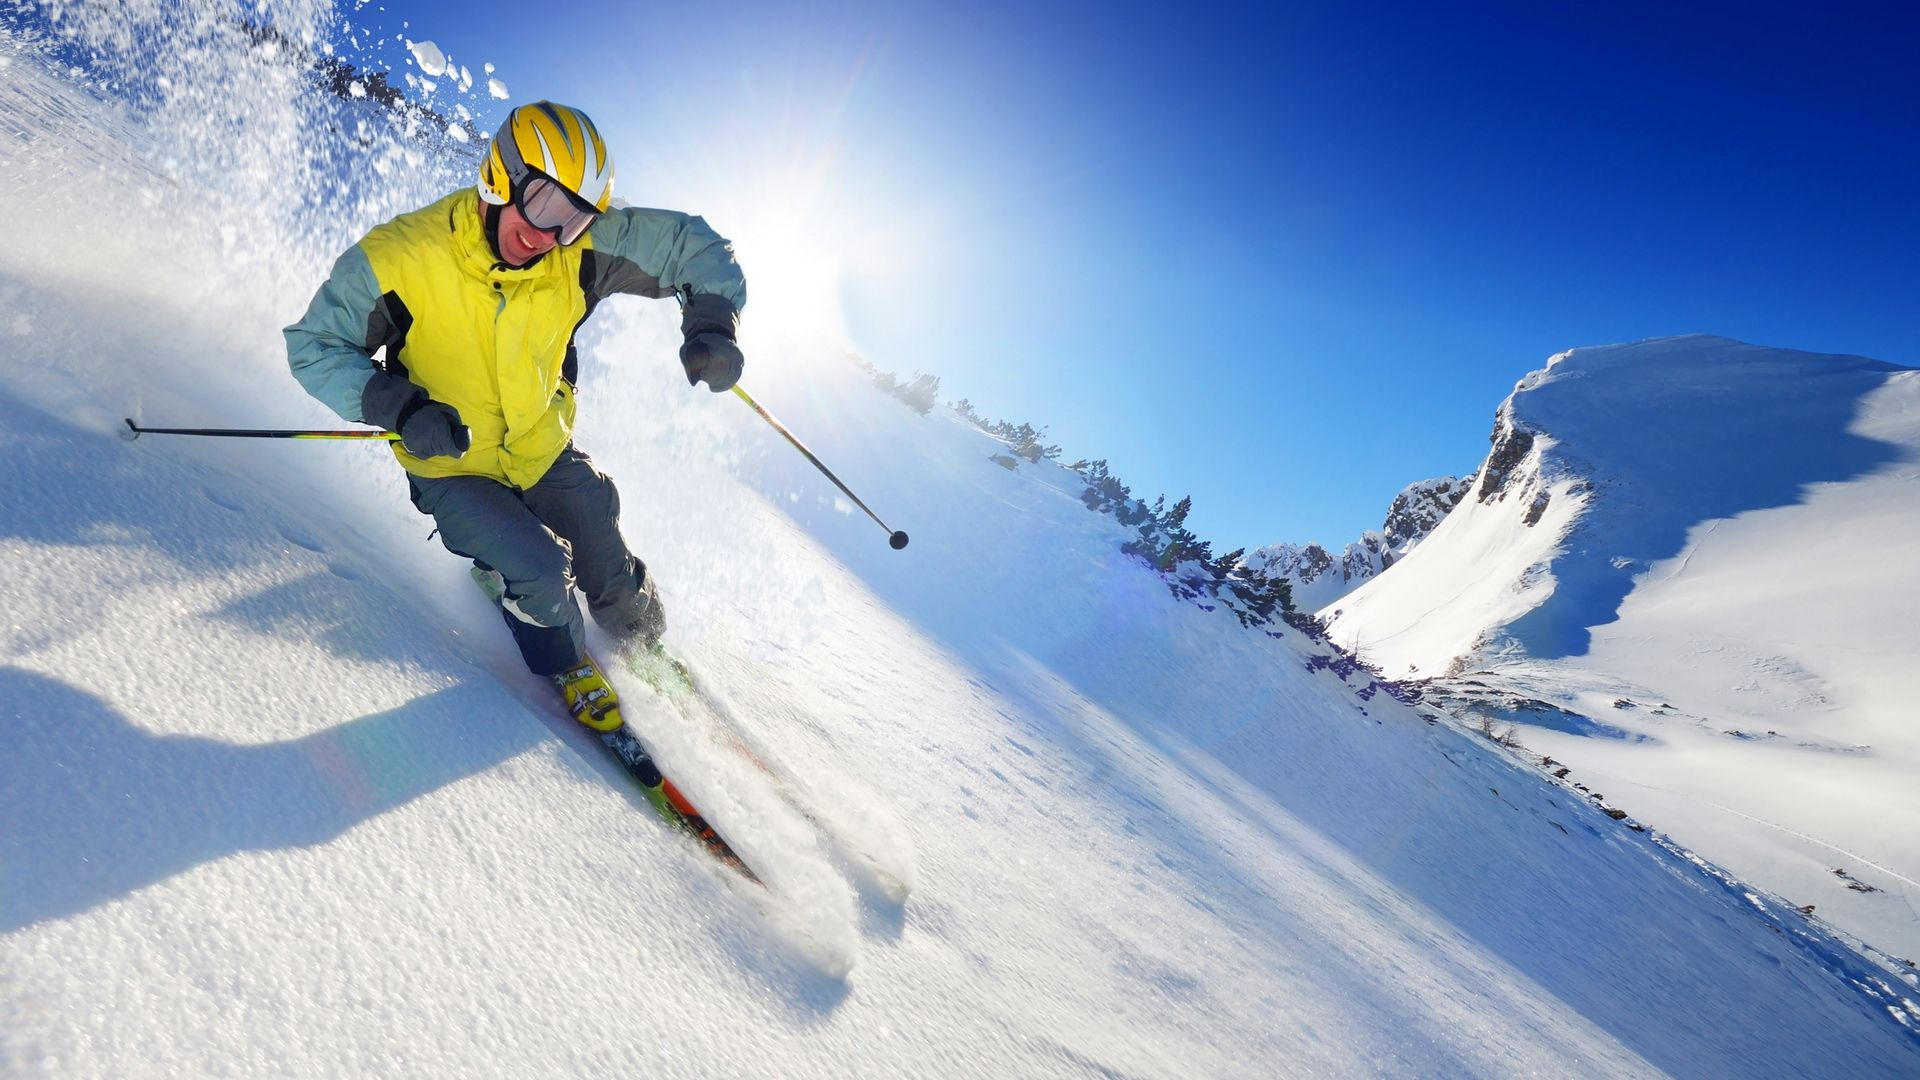 mountain skiing, descent, sportsman - http://www.wallpapers4u.org/mountain-skiing-descent-sportsman/